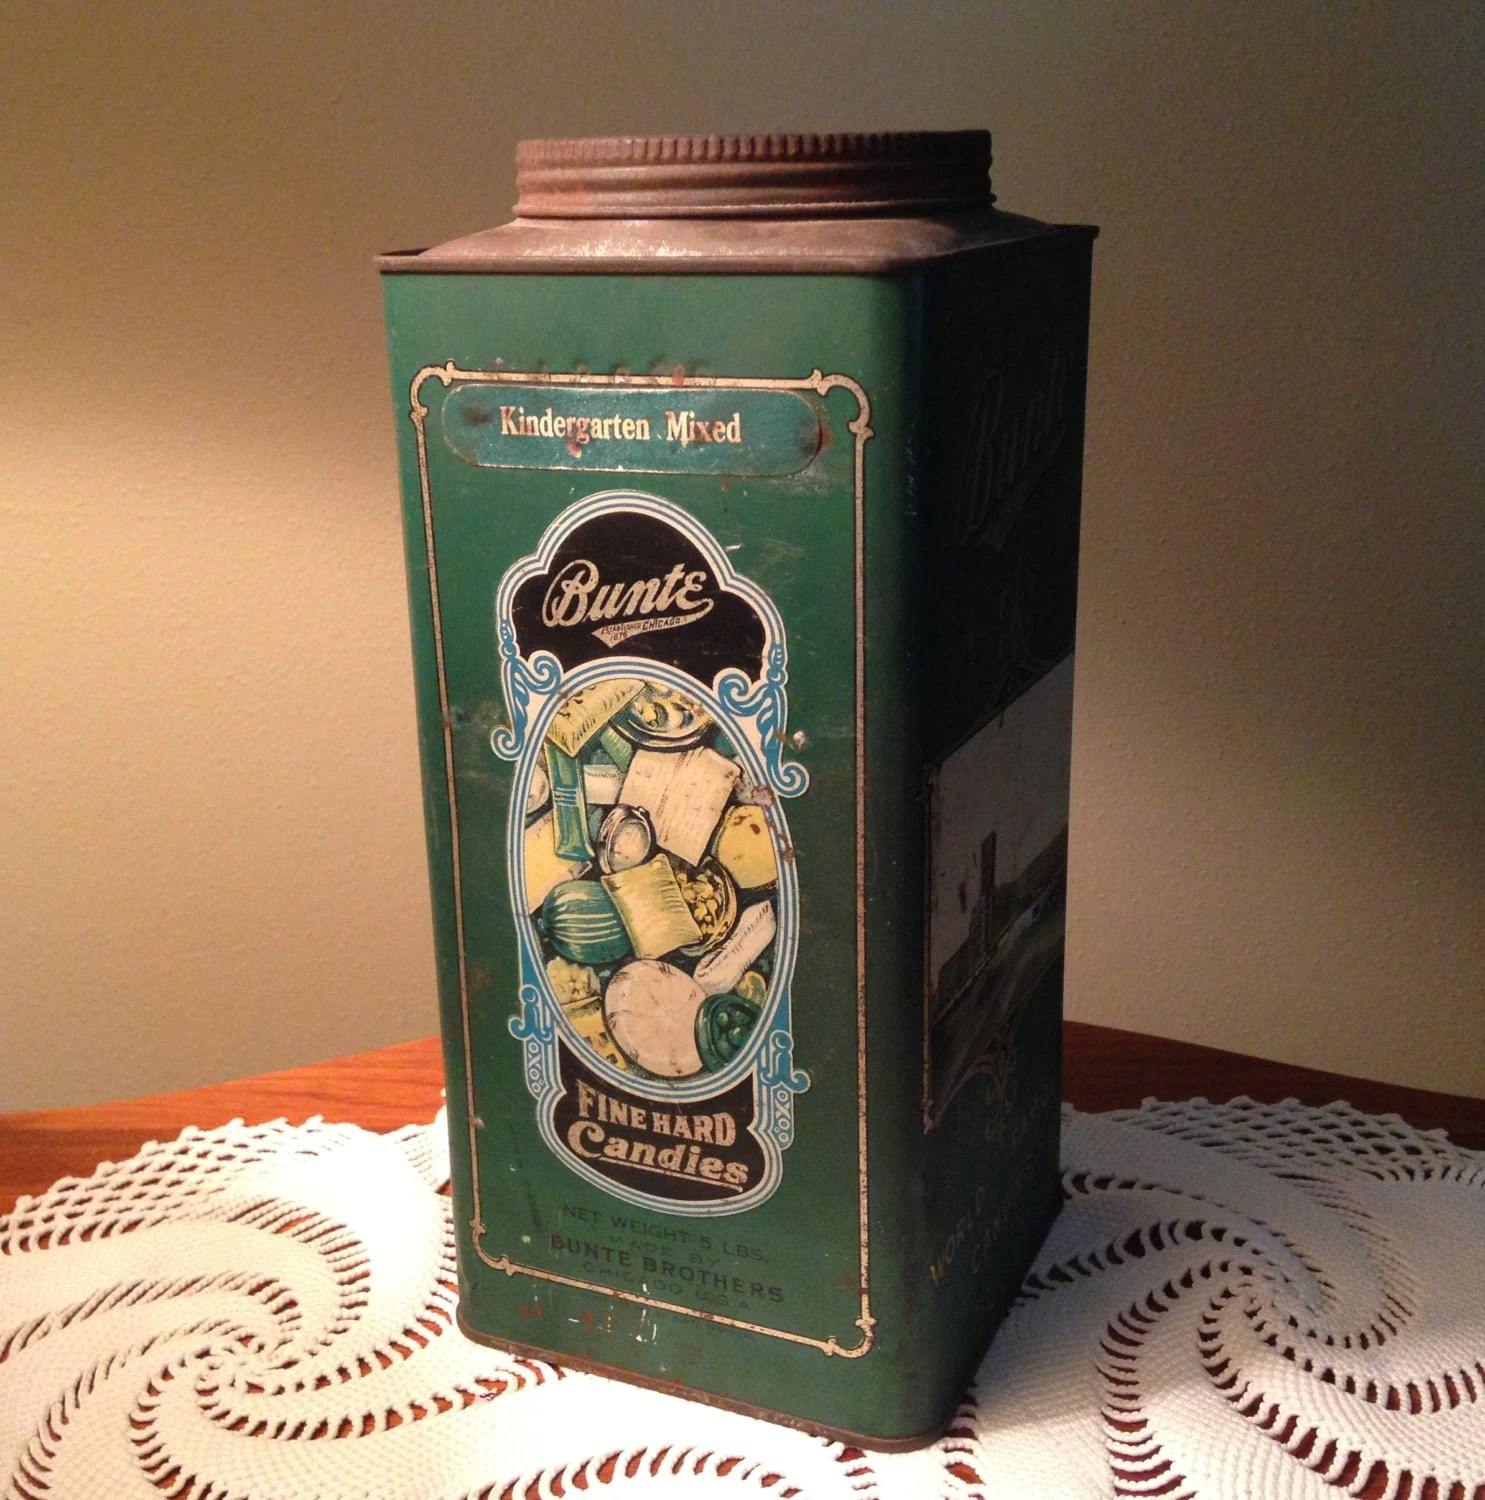 vintage bunte world famous candies tin from 1923 haute juice